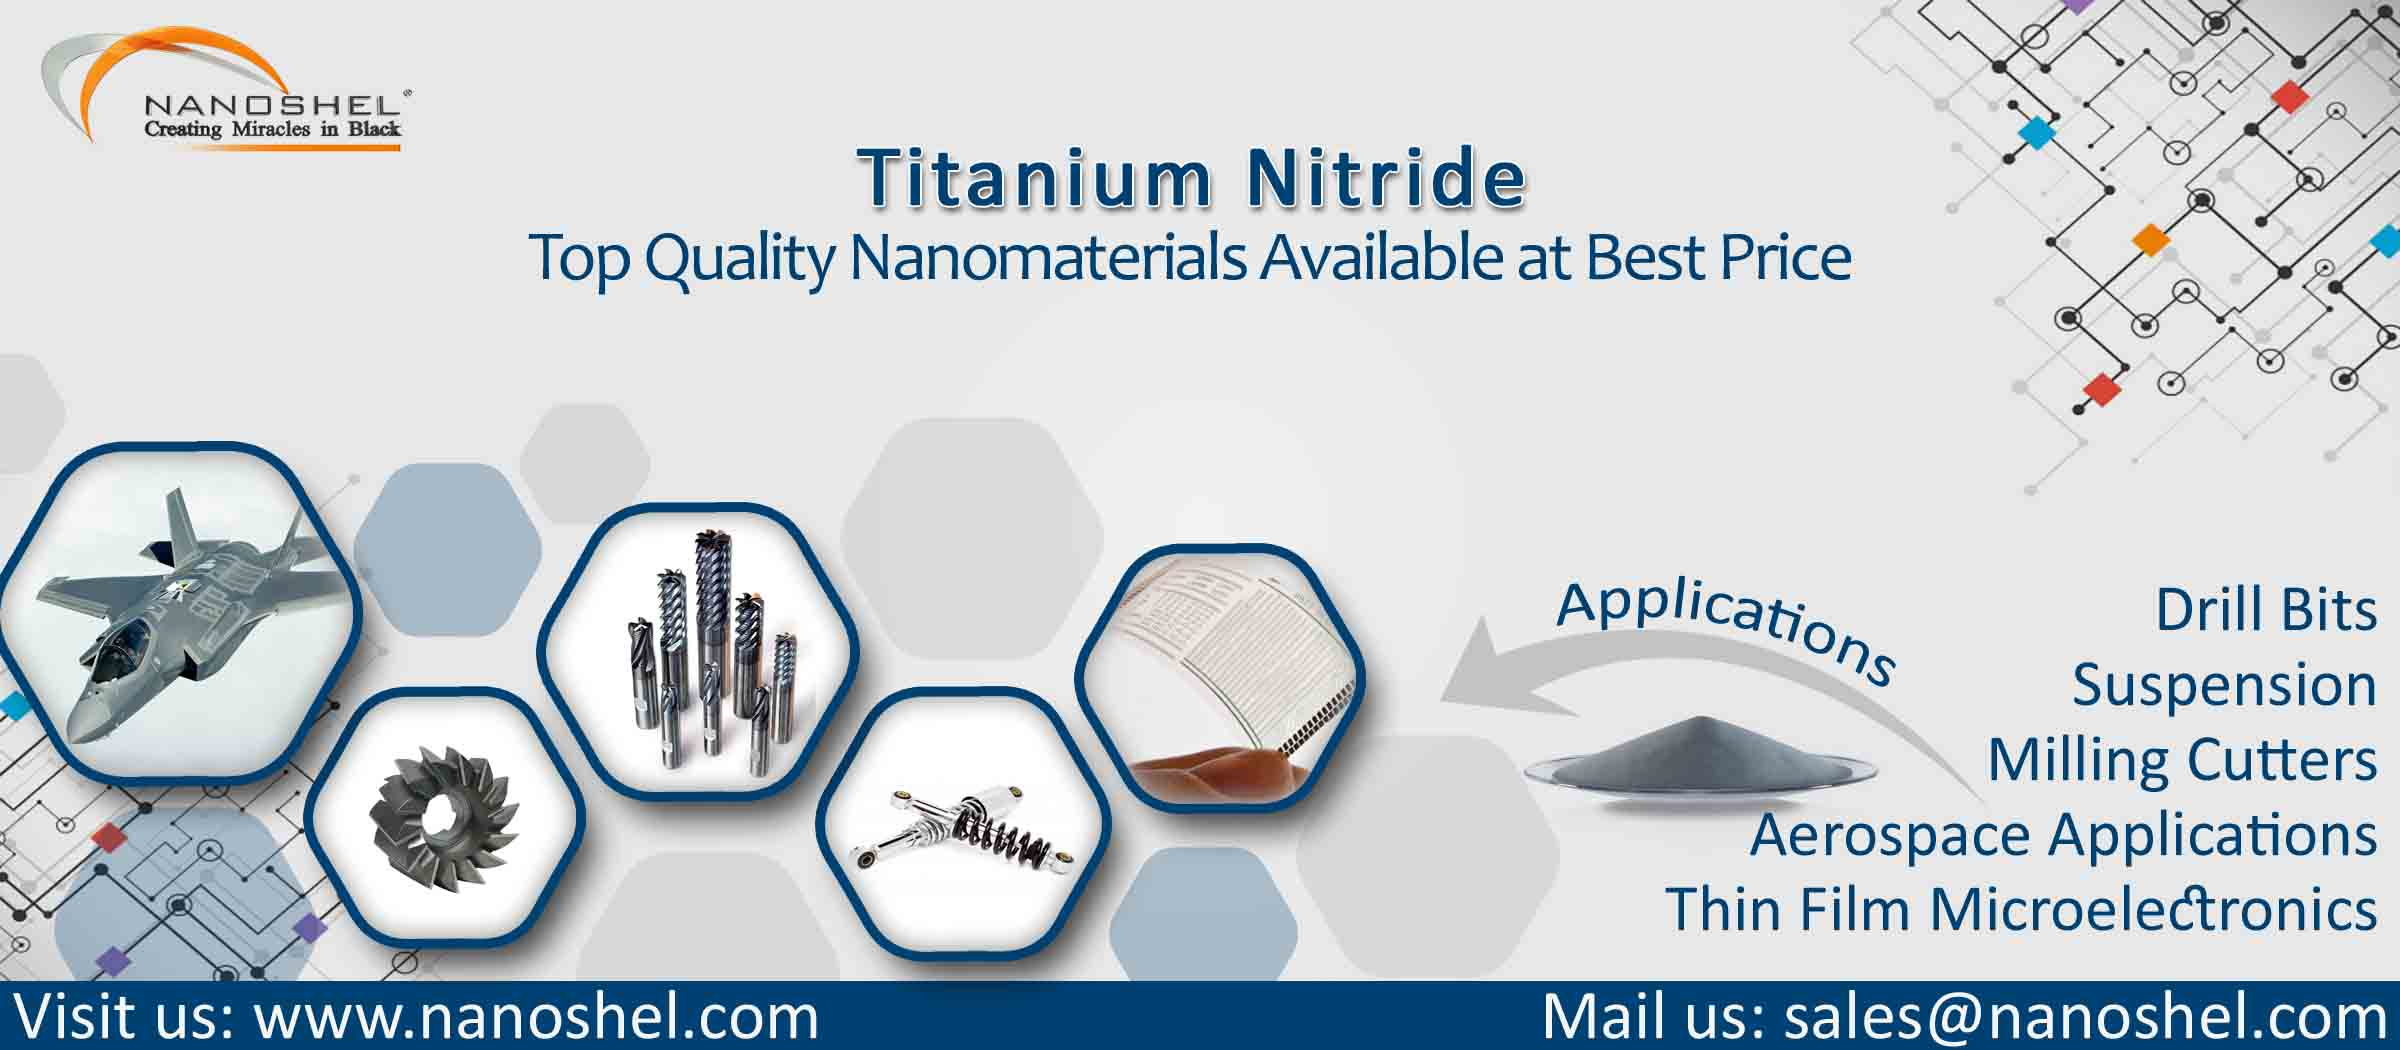 Titanium Nitride Nanoparticles Application